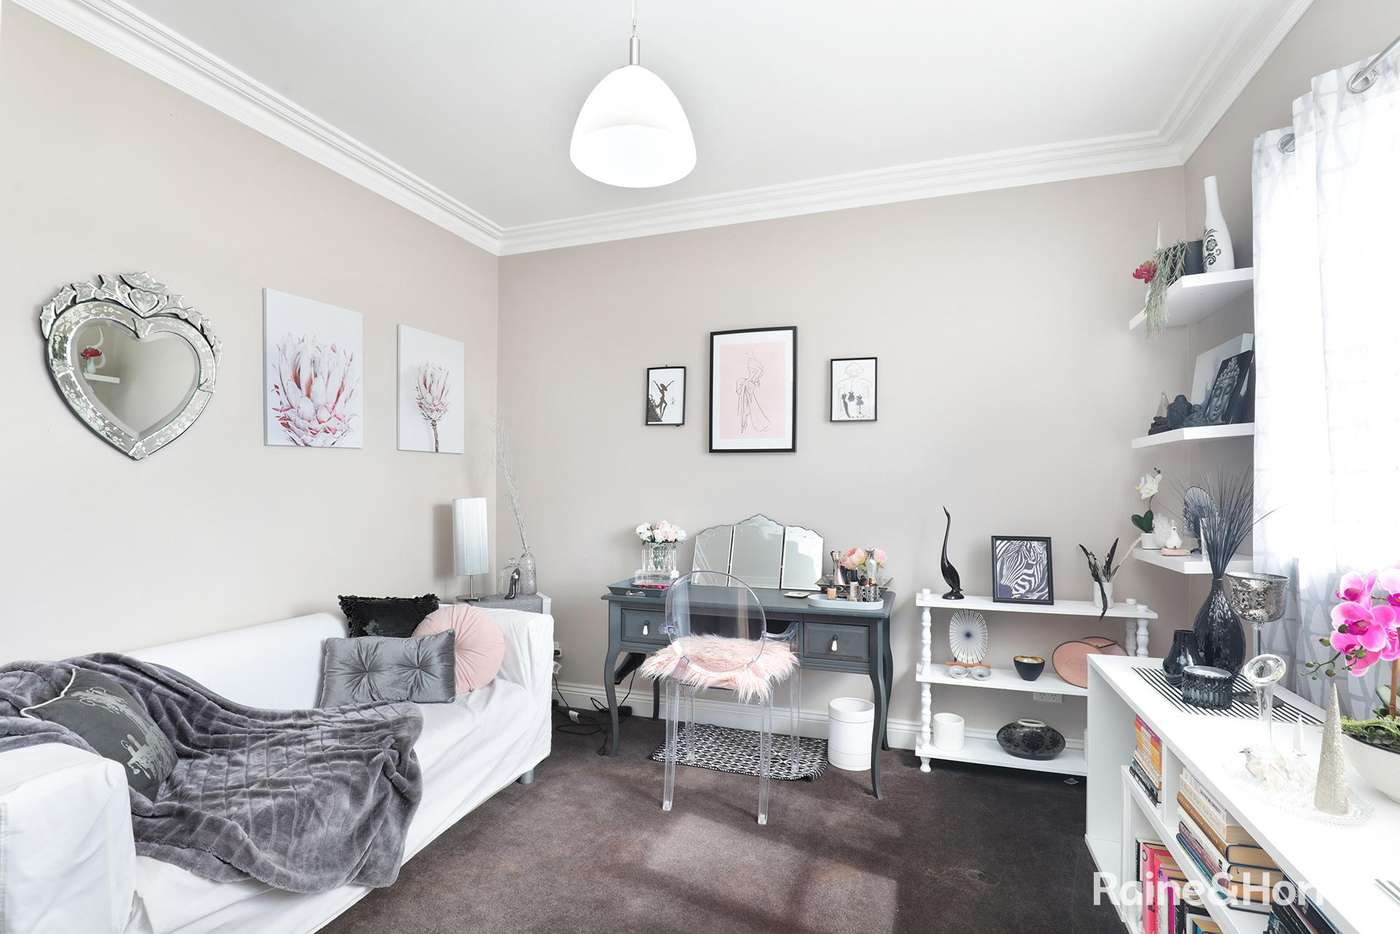 Fifth view of Homely house listing, 13 Dalgarno Street, Williamstown VIC 3016